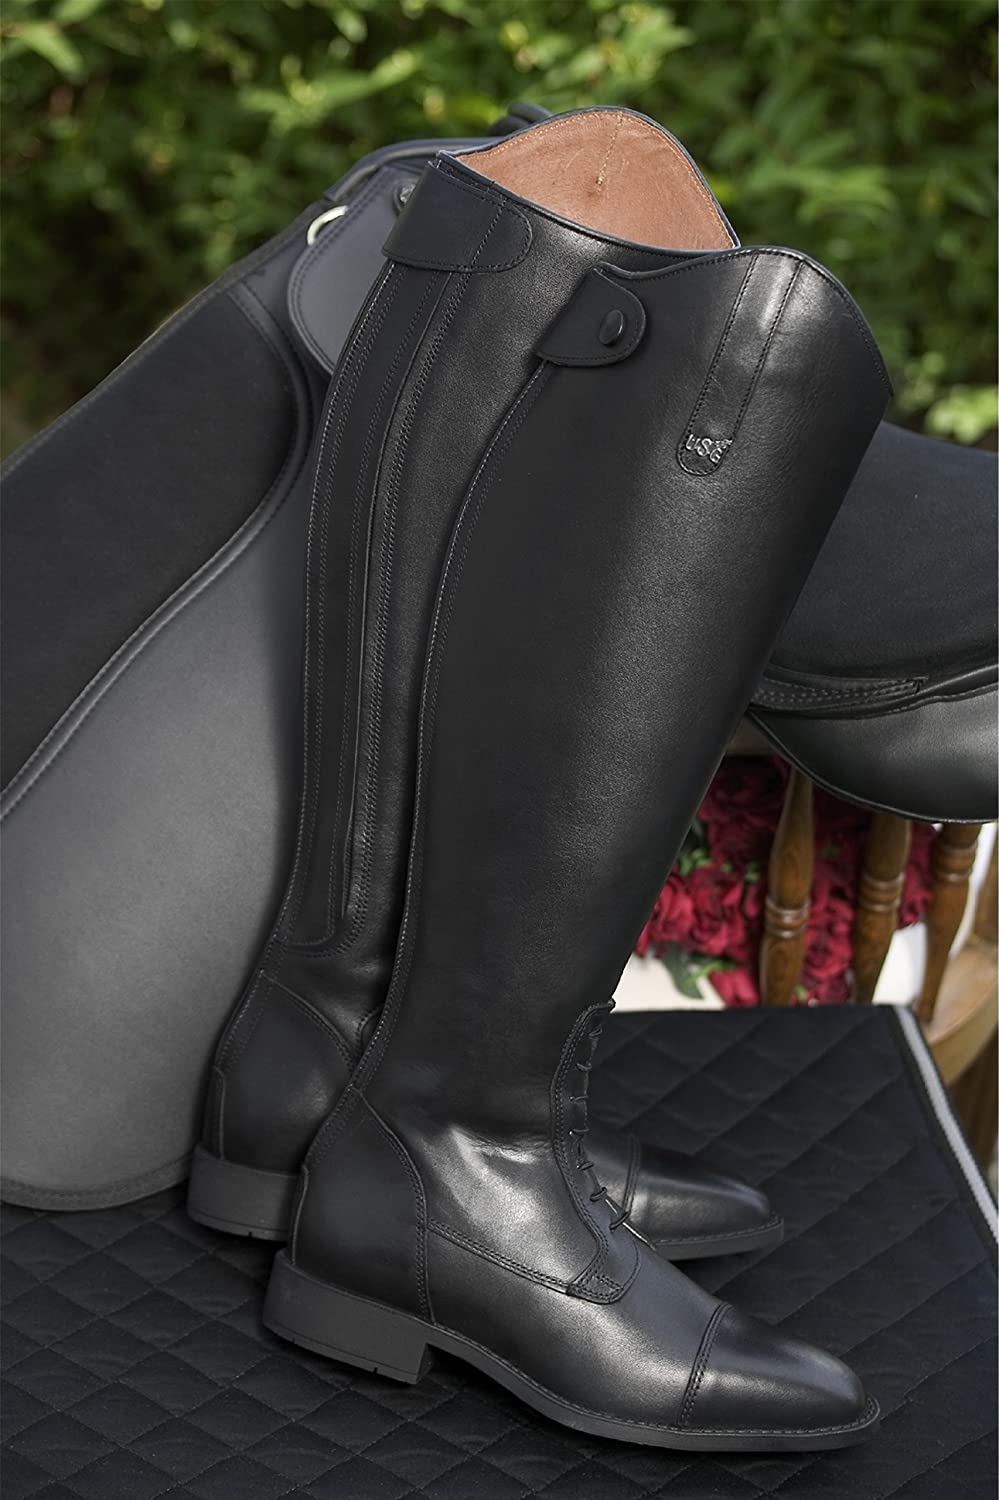 United Sportproducts Germany USG 12050009-438-212 Reitstiefel, schwarz, Gr. 38, SW 38, H 46